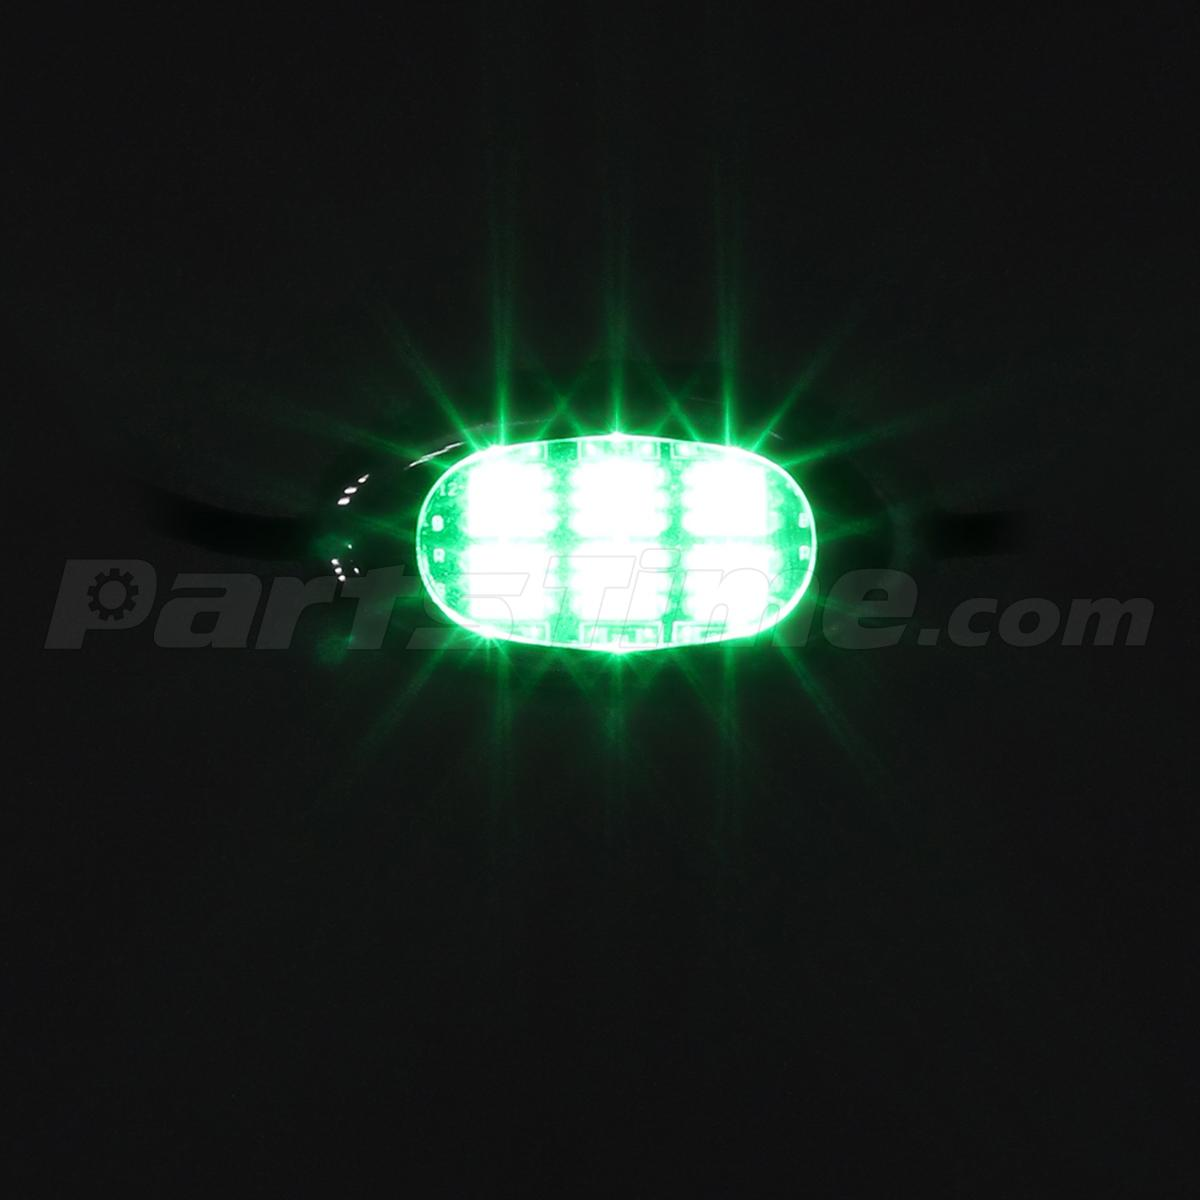 Green 10pod motorcycle 60led underglow neon accent light kit push button switch ebay - Underglow neon ...